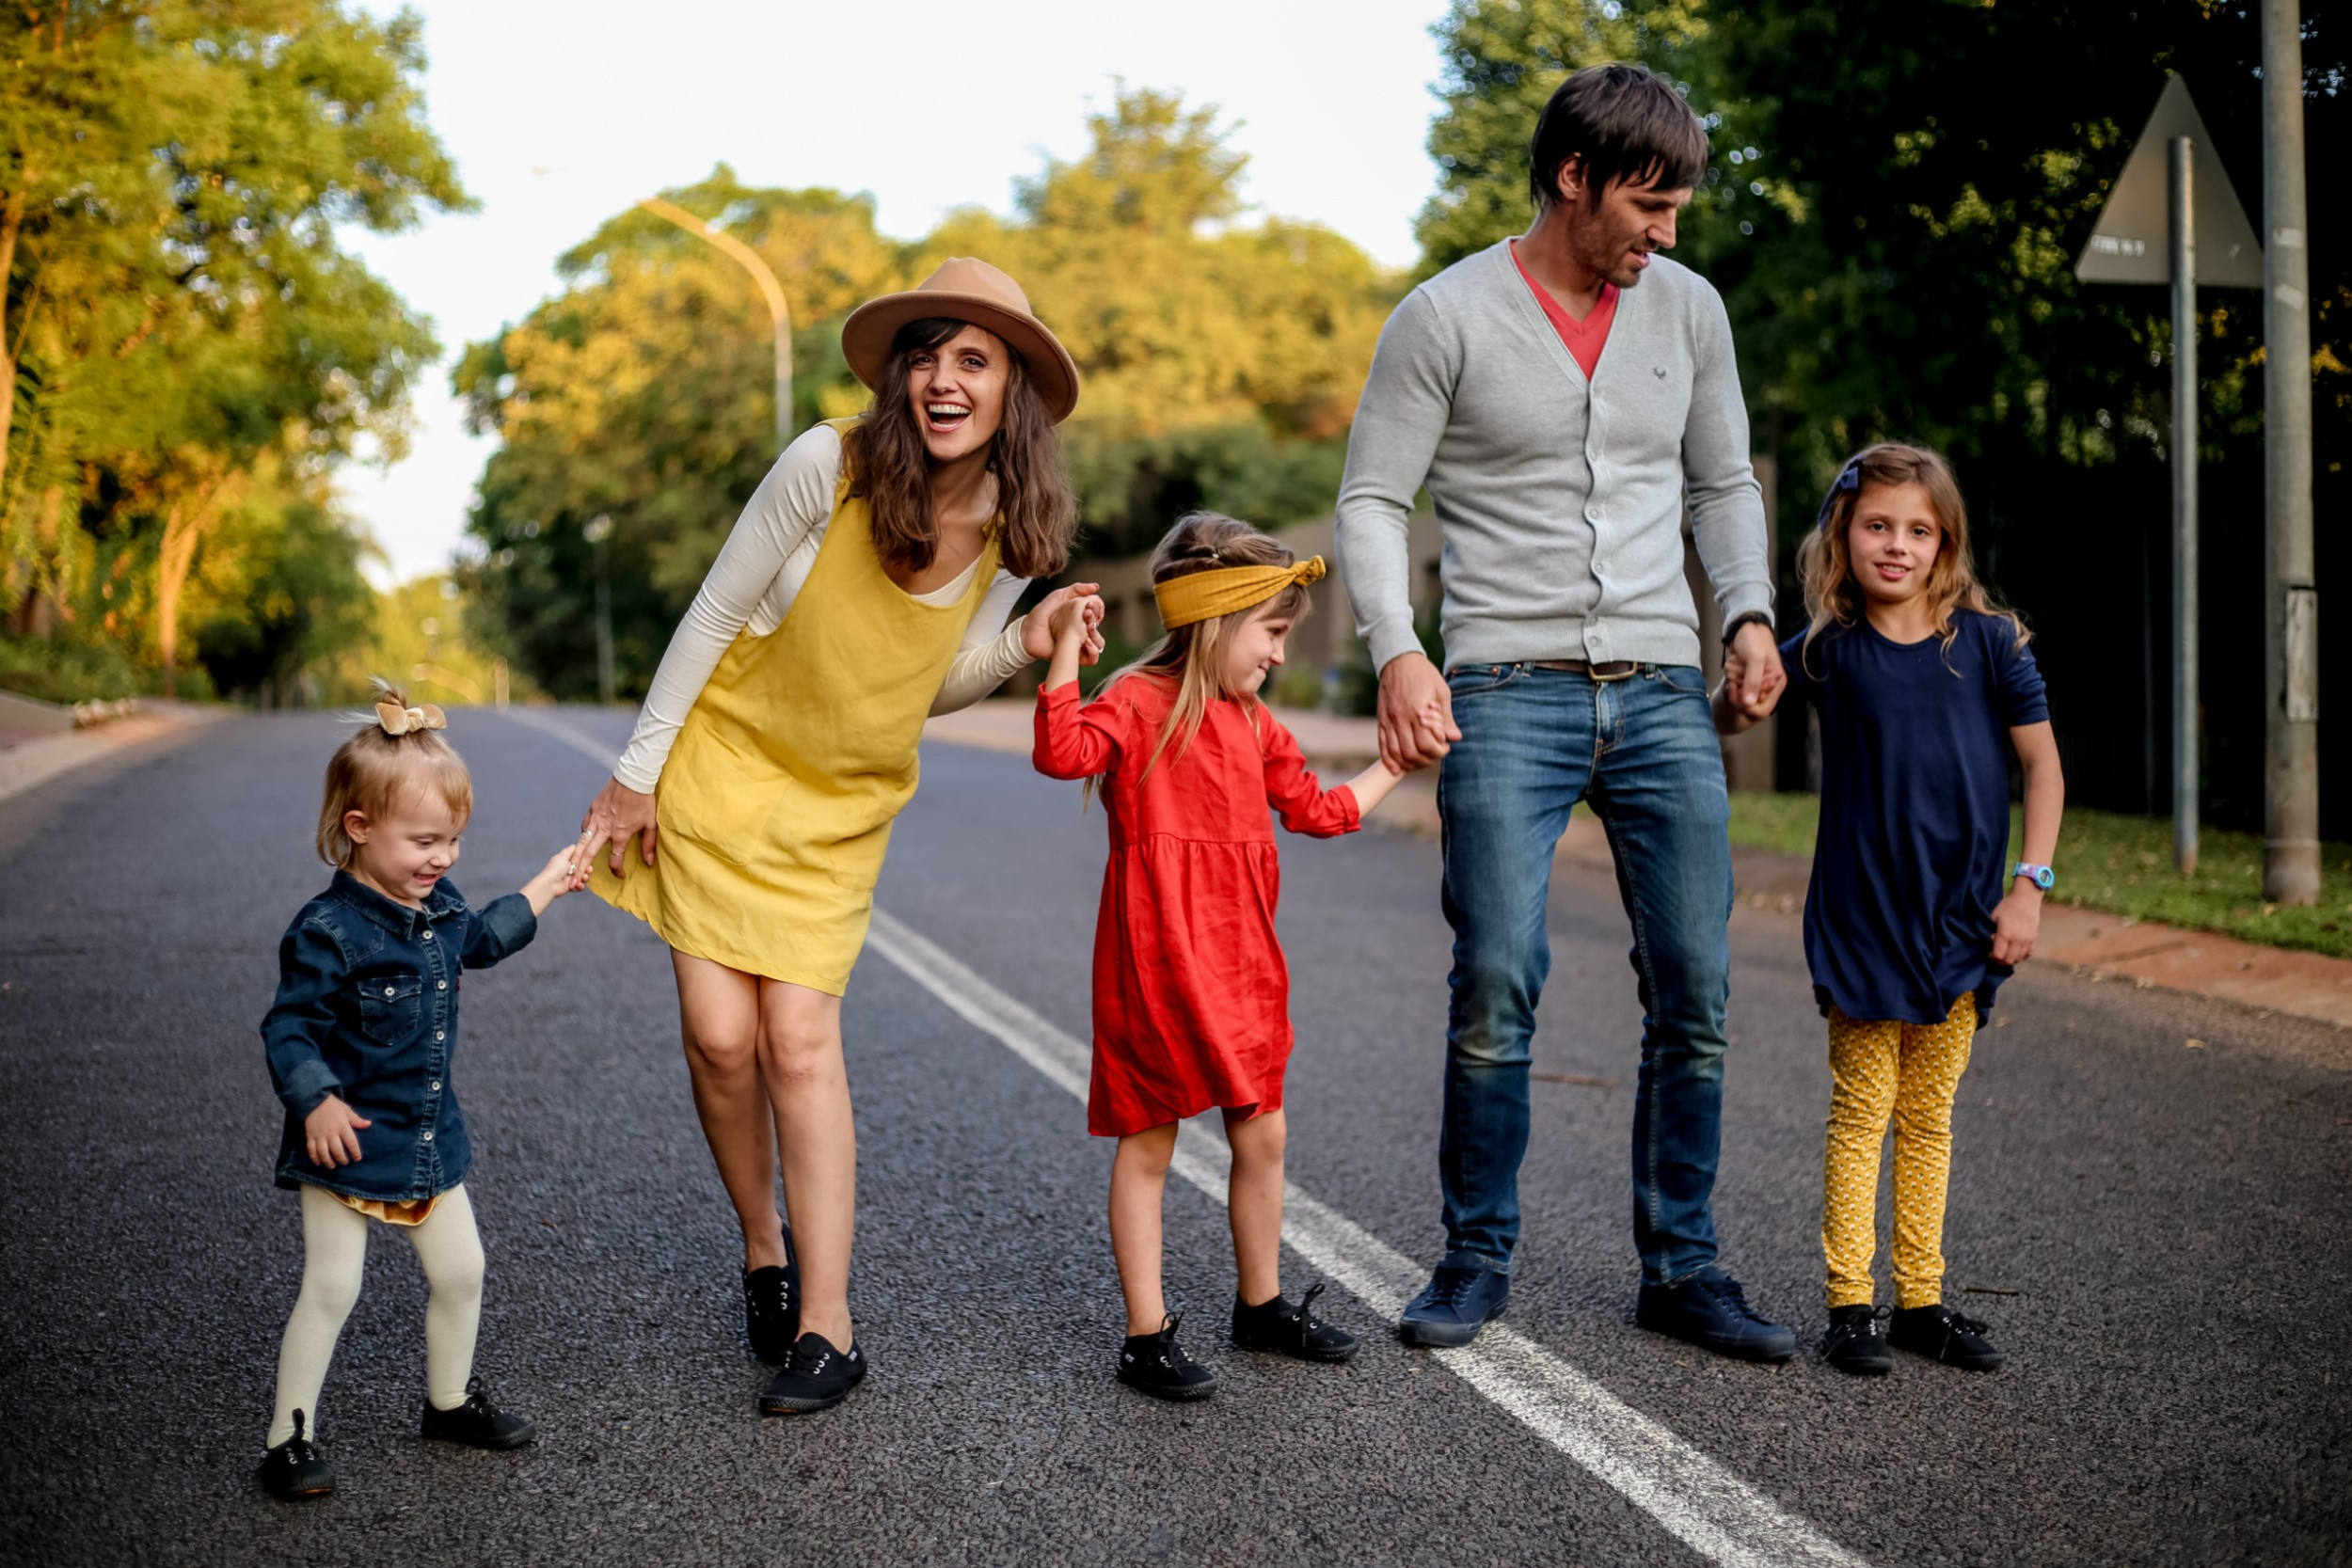 Why you should consider doing an annual Winter family photo shoot scaled